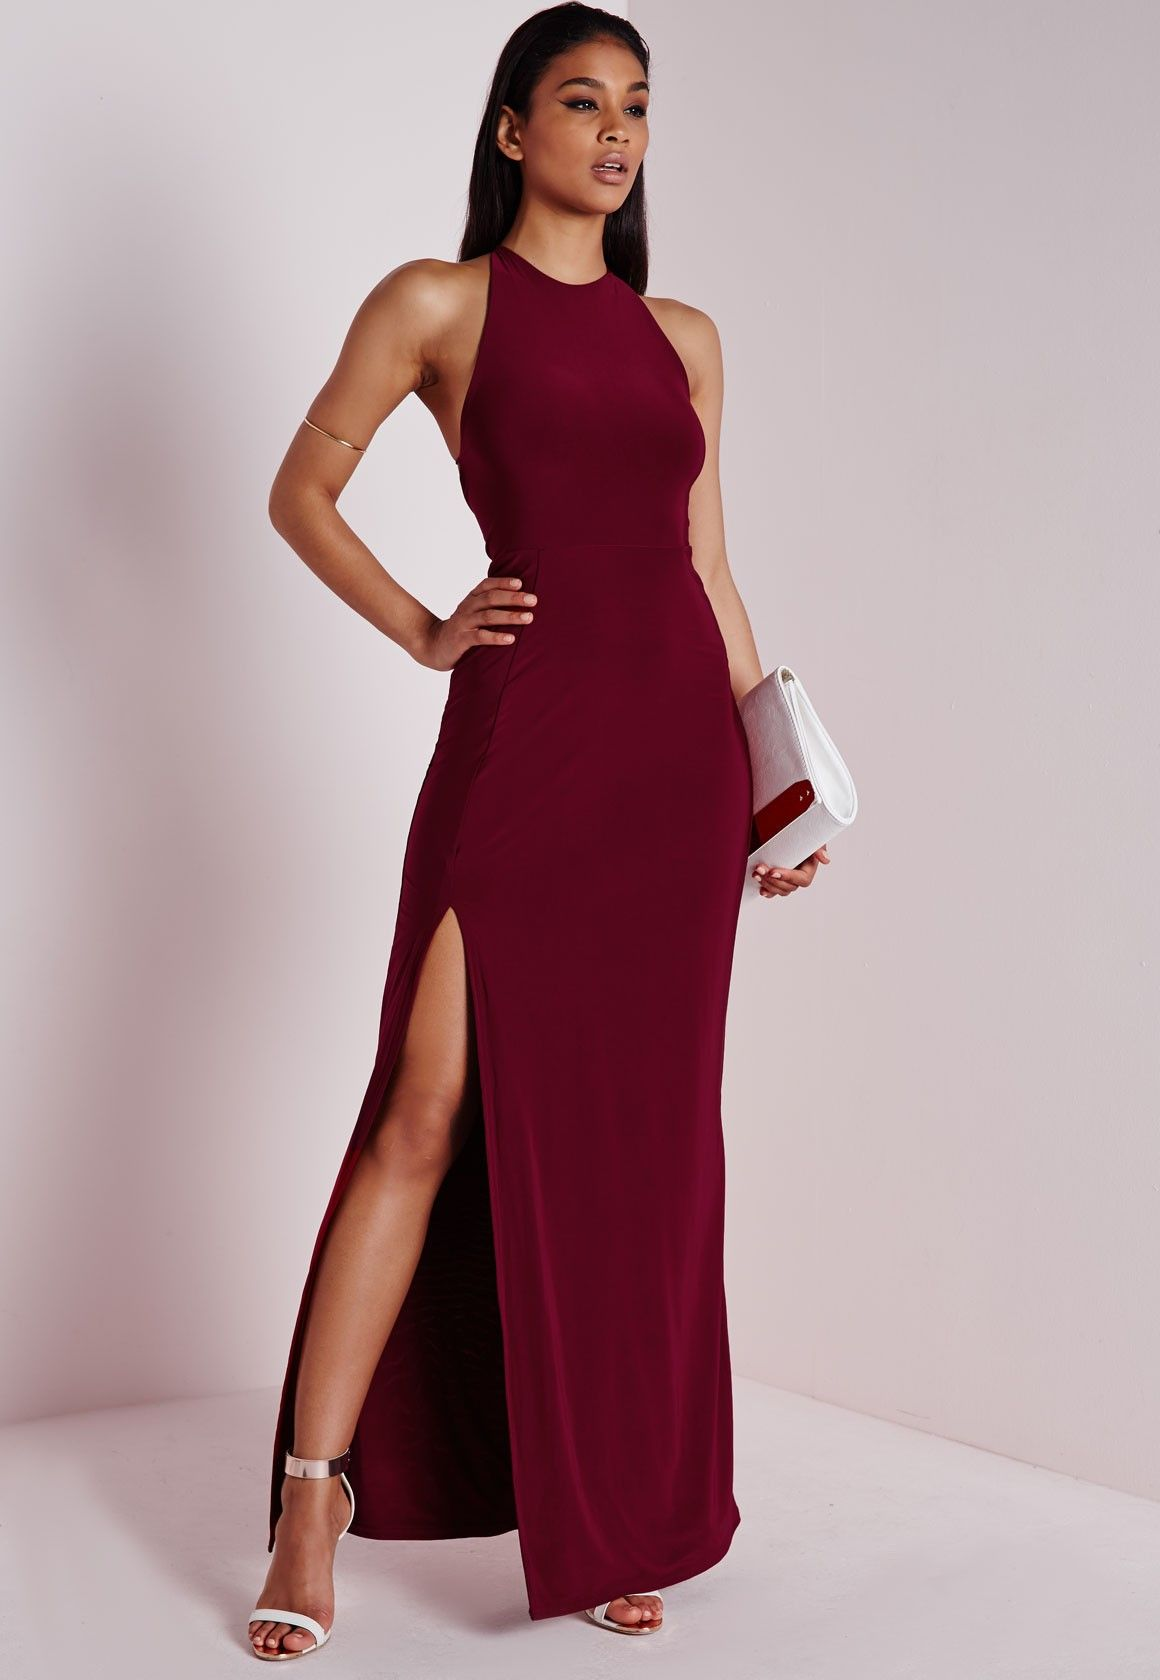 35efb5e06571 Missguided - Robe longue fluide fendue bordeaux